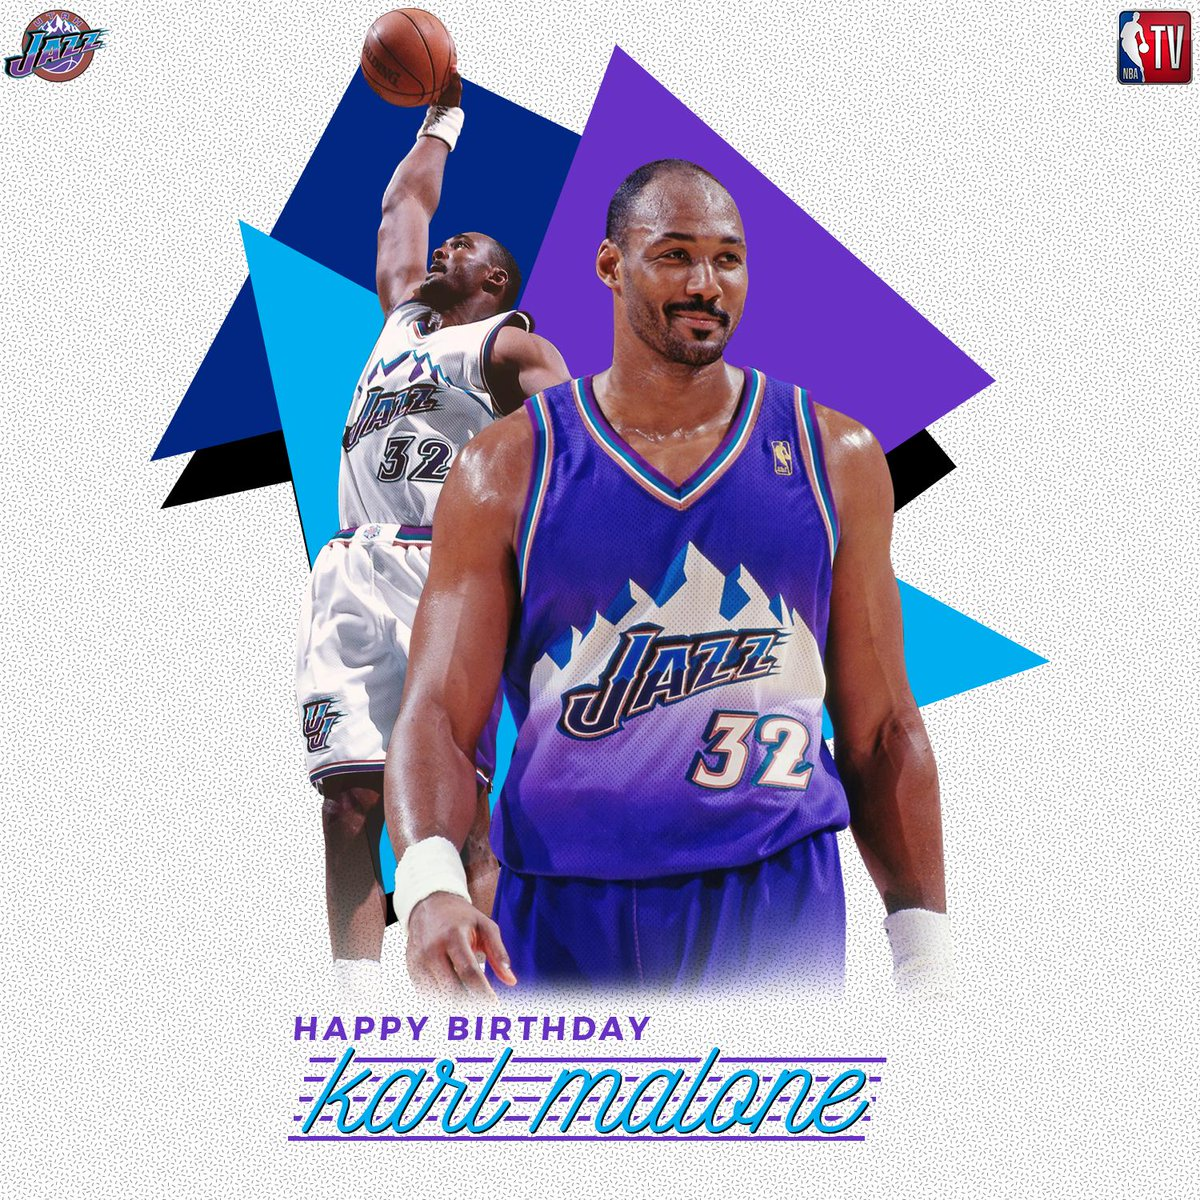 RT to help us wish 2x @NBA MVP, 14x All-Star and @utahjazz legend, Karl Malone a Happy Birthday! 🎉🎂🎉